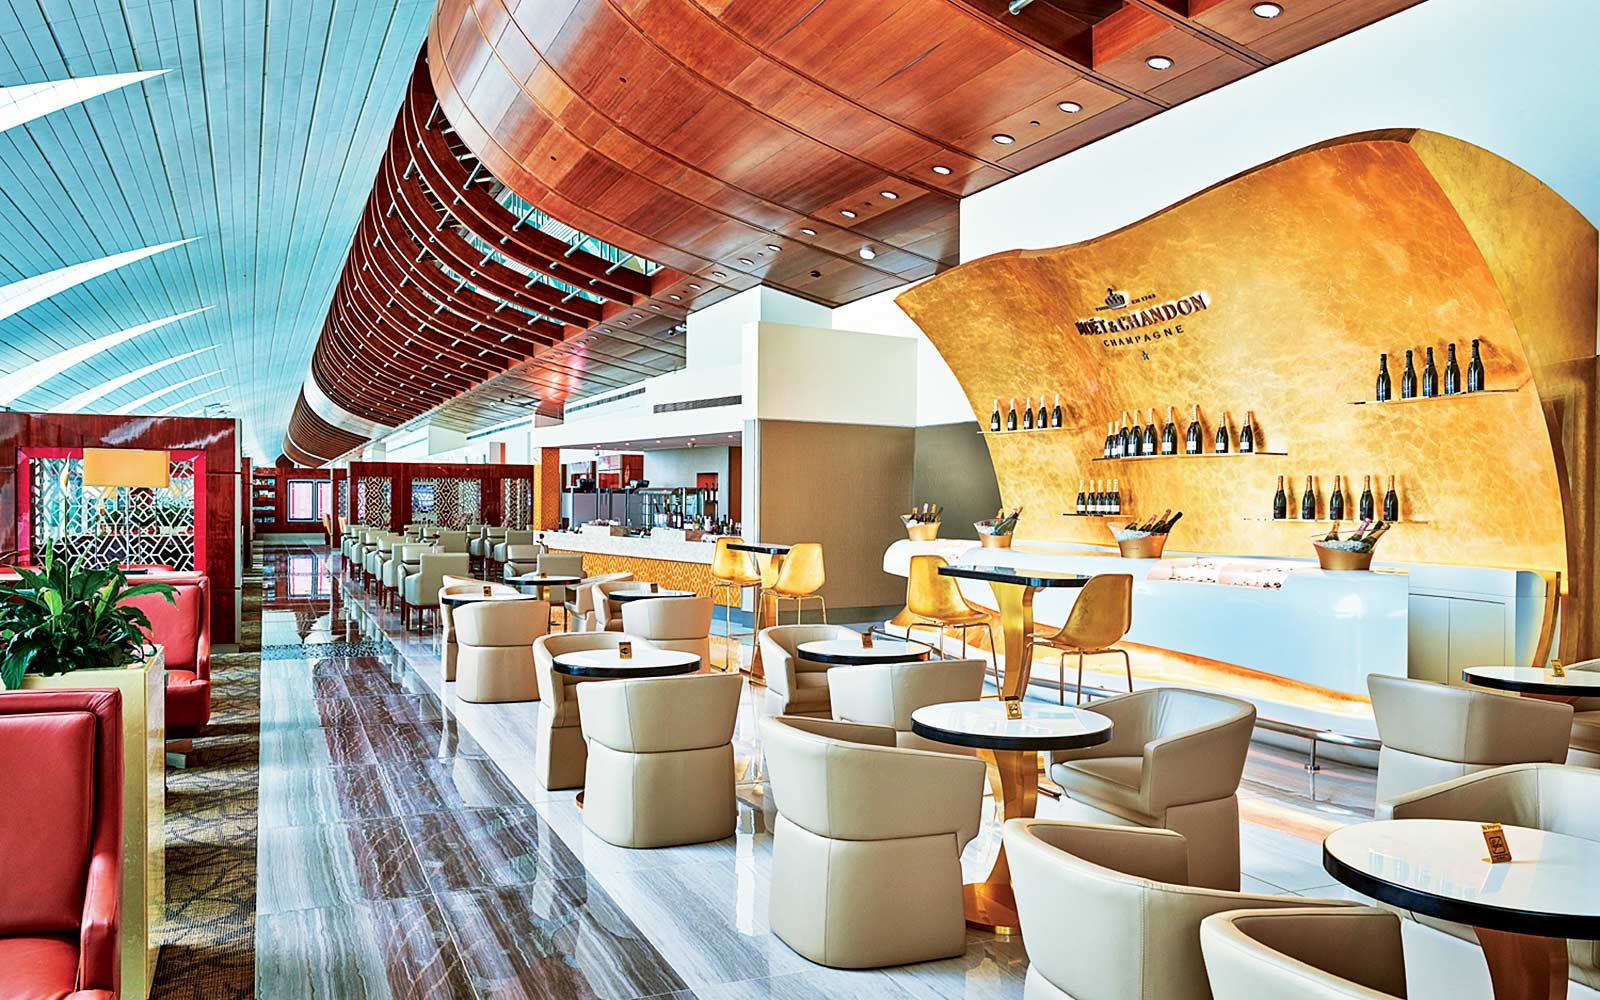 Emirates coach passengers in business/first class lounges